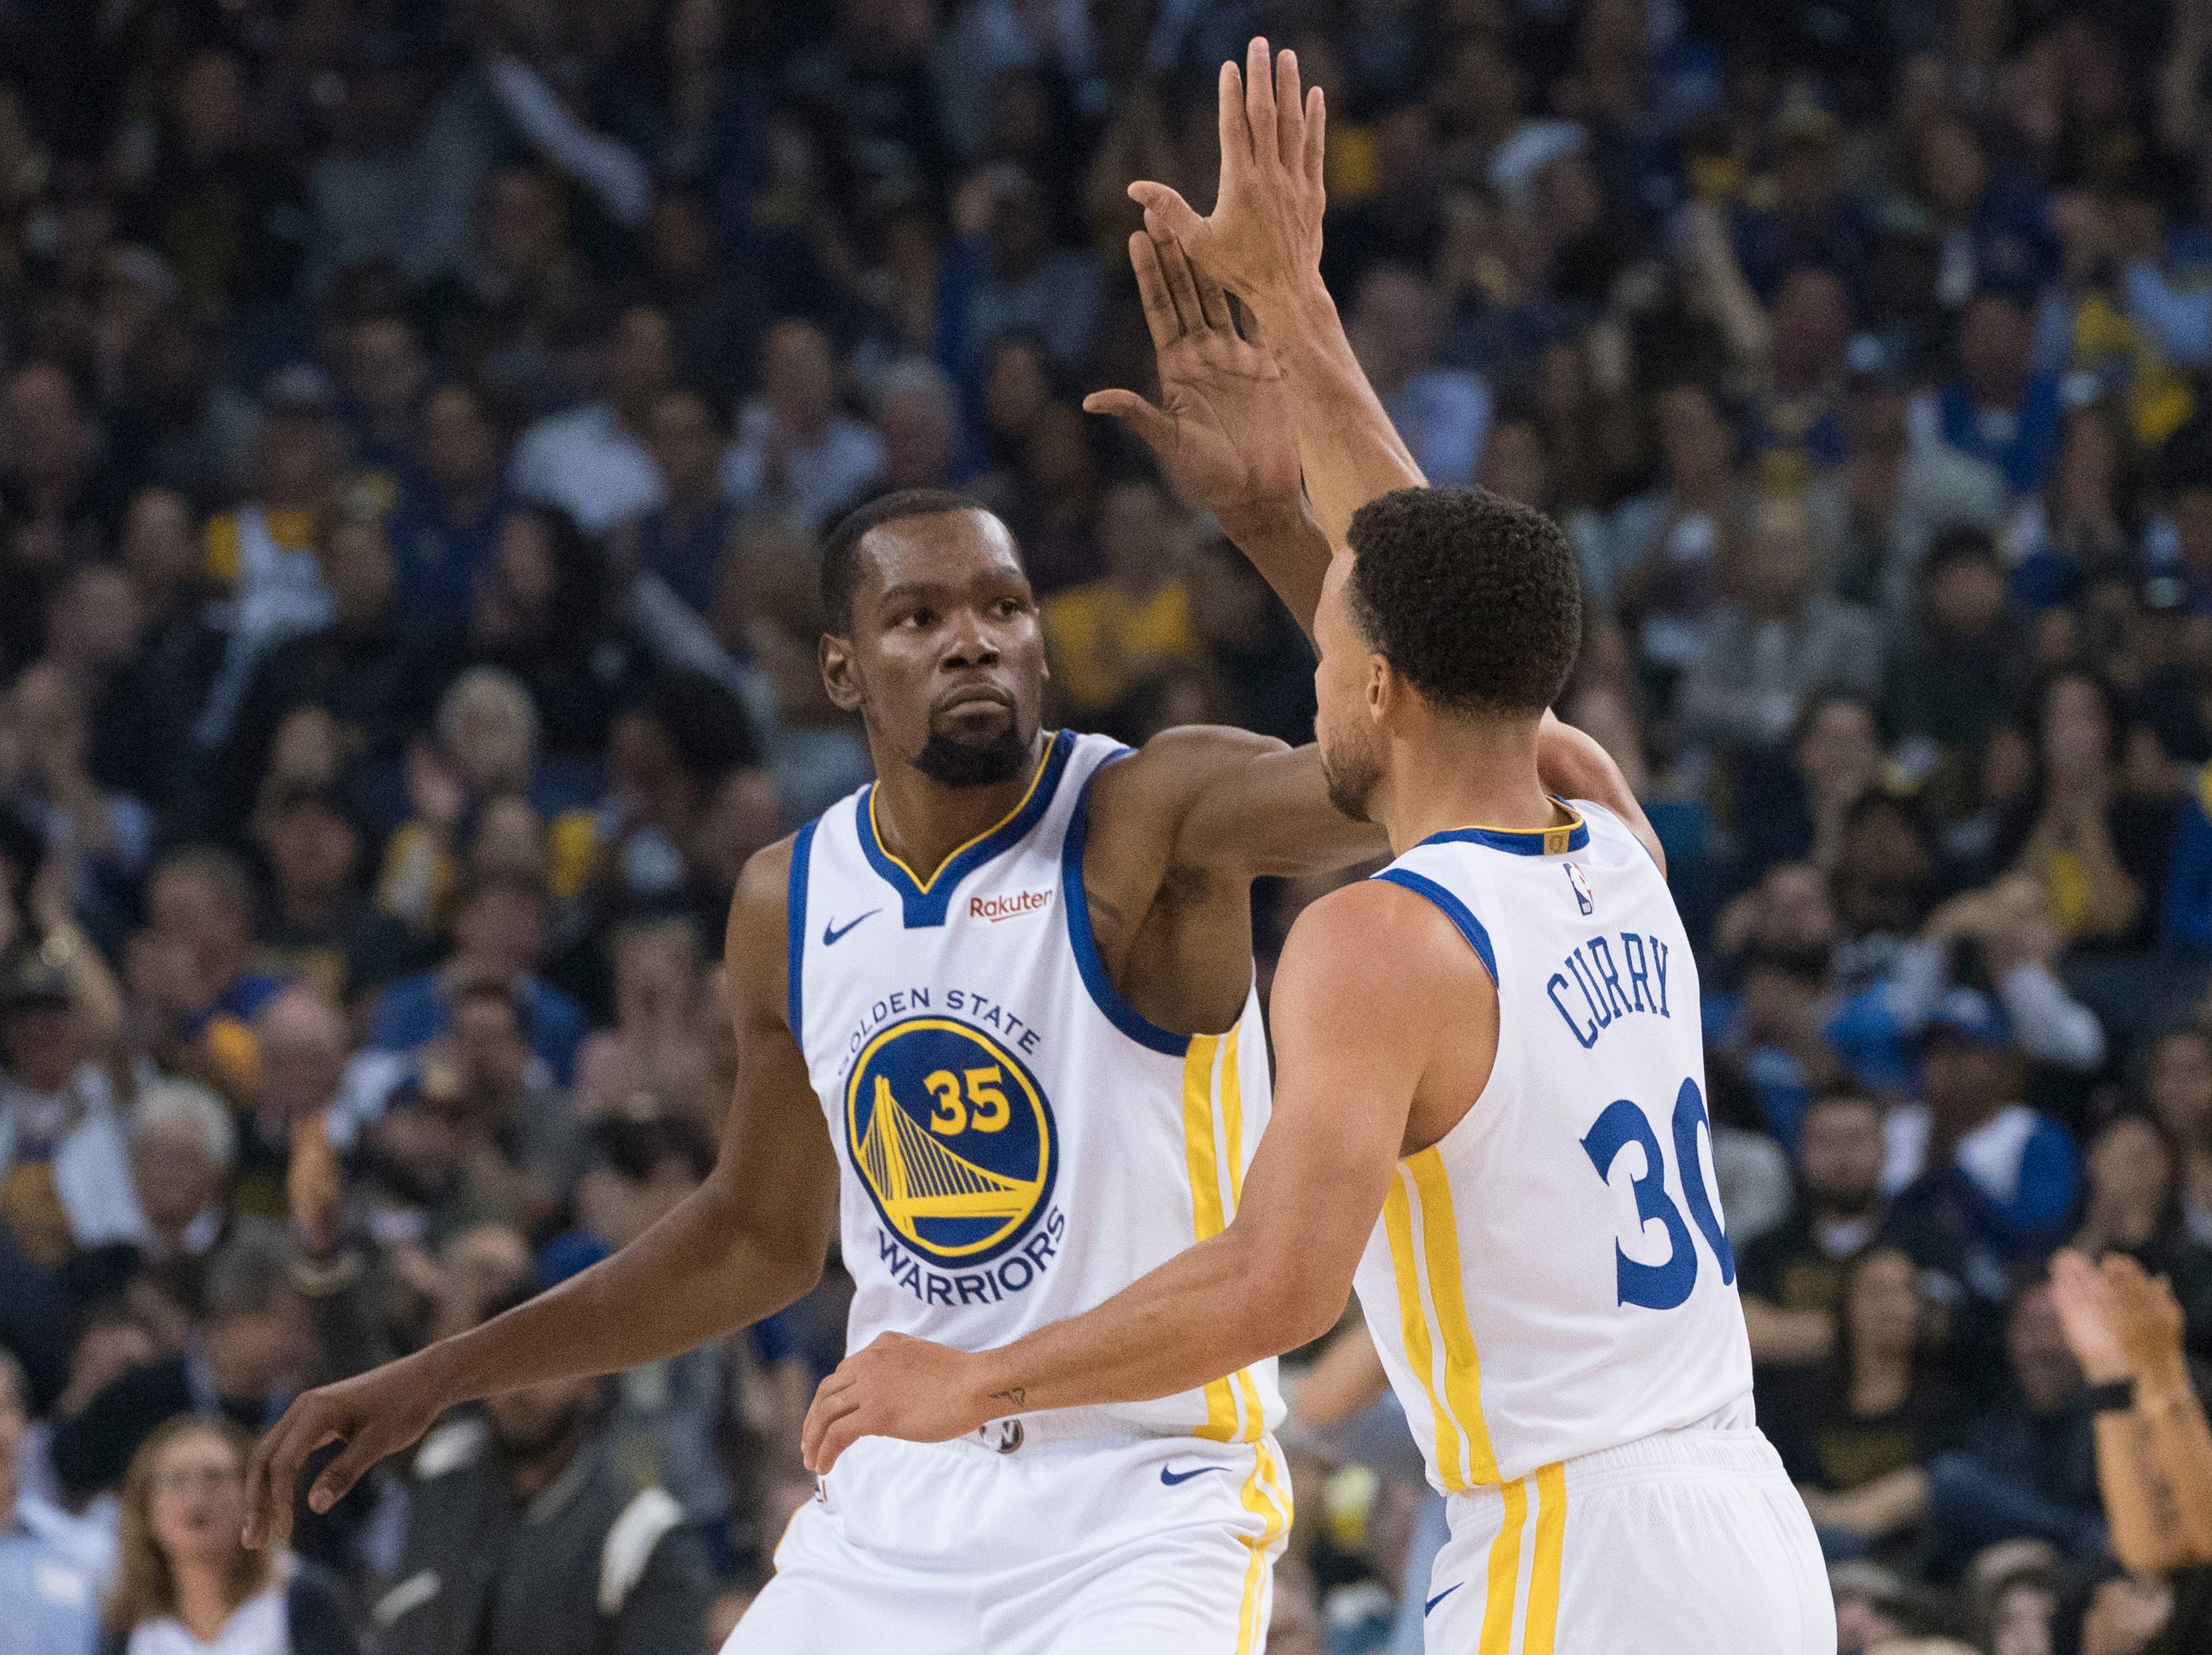 Oct. 16: Golden State Warriors forward Kevin Durant (35) congratulates guard Stephen Curry (30) for making a three-point basket against the Oklahoma City Thunder.